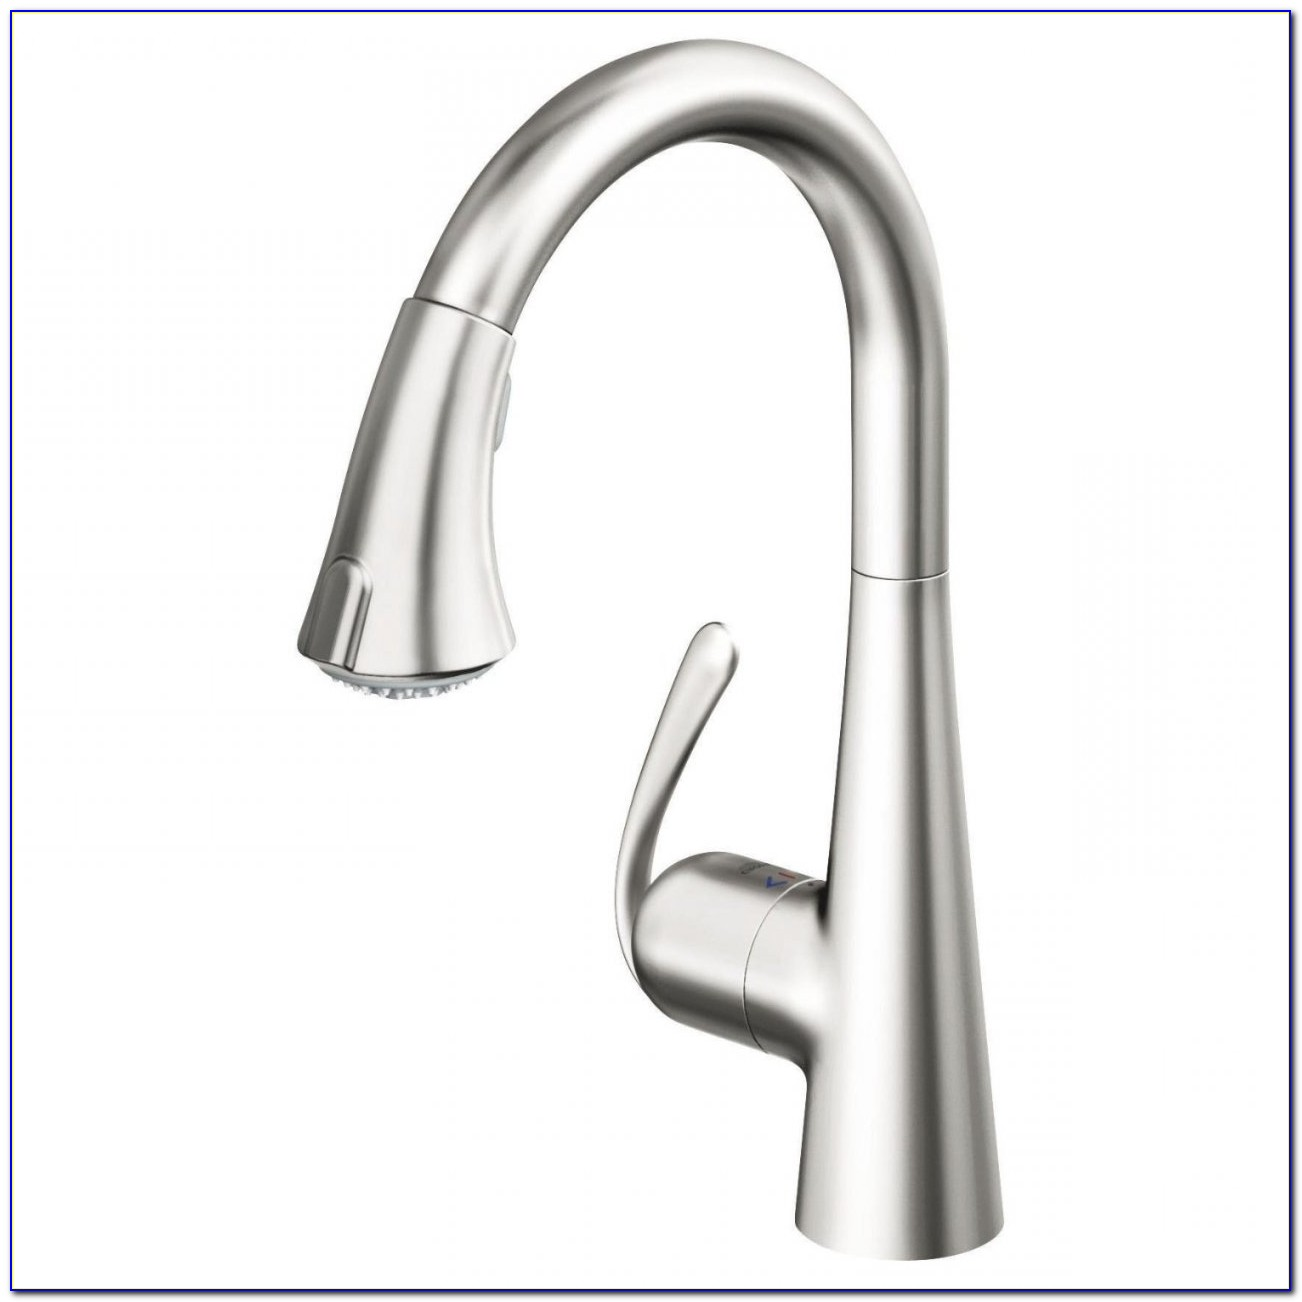 Moen Kitchen Faucet Costco Extraordinary Outstanding Faucets For Throughout Moen Kitchen Faucets Amazon